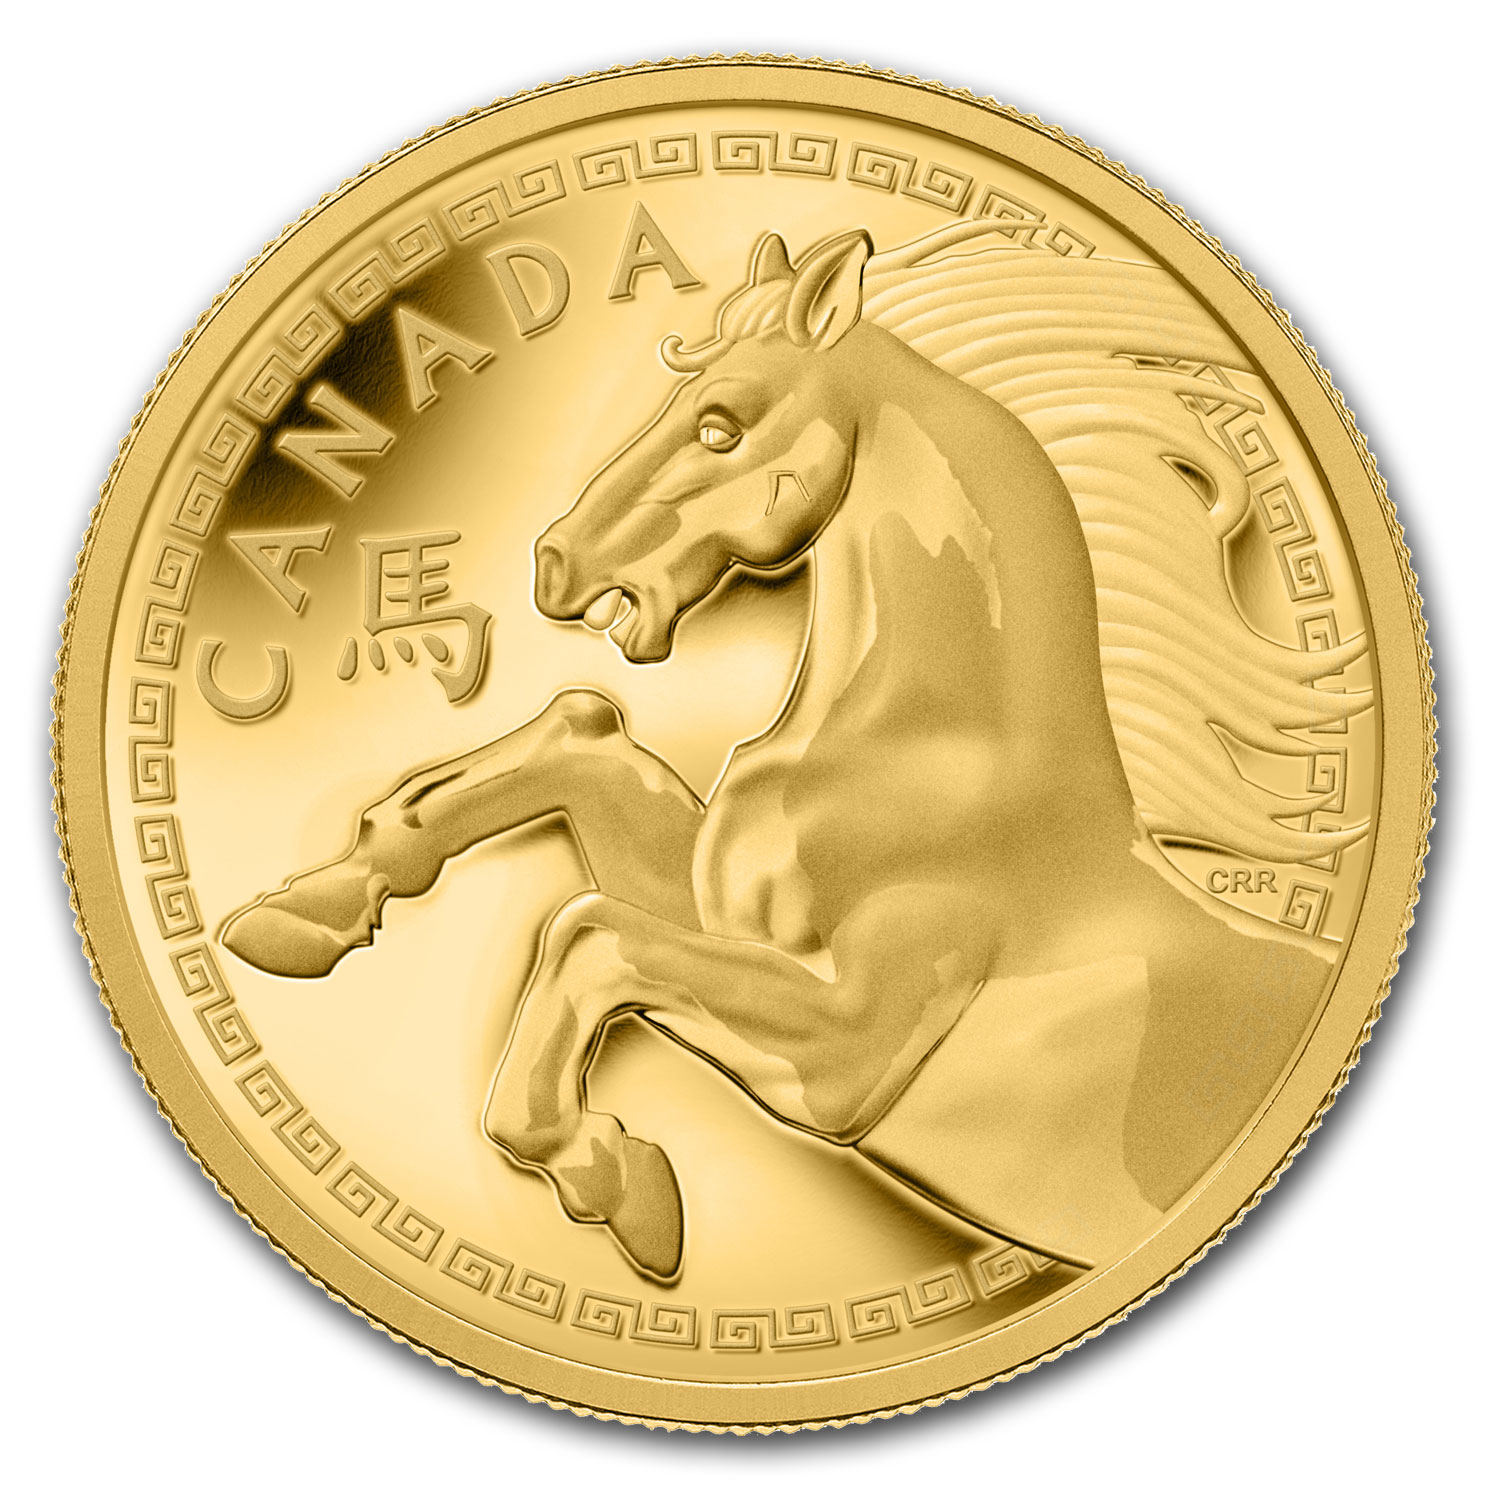 2014 Canada 1 kilo Gold $2,500 Year of the Horse Proof